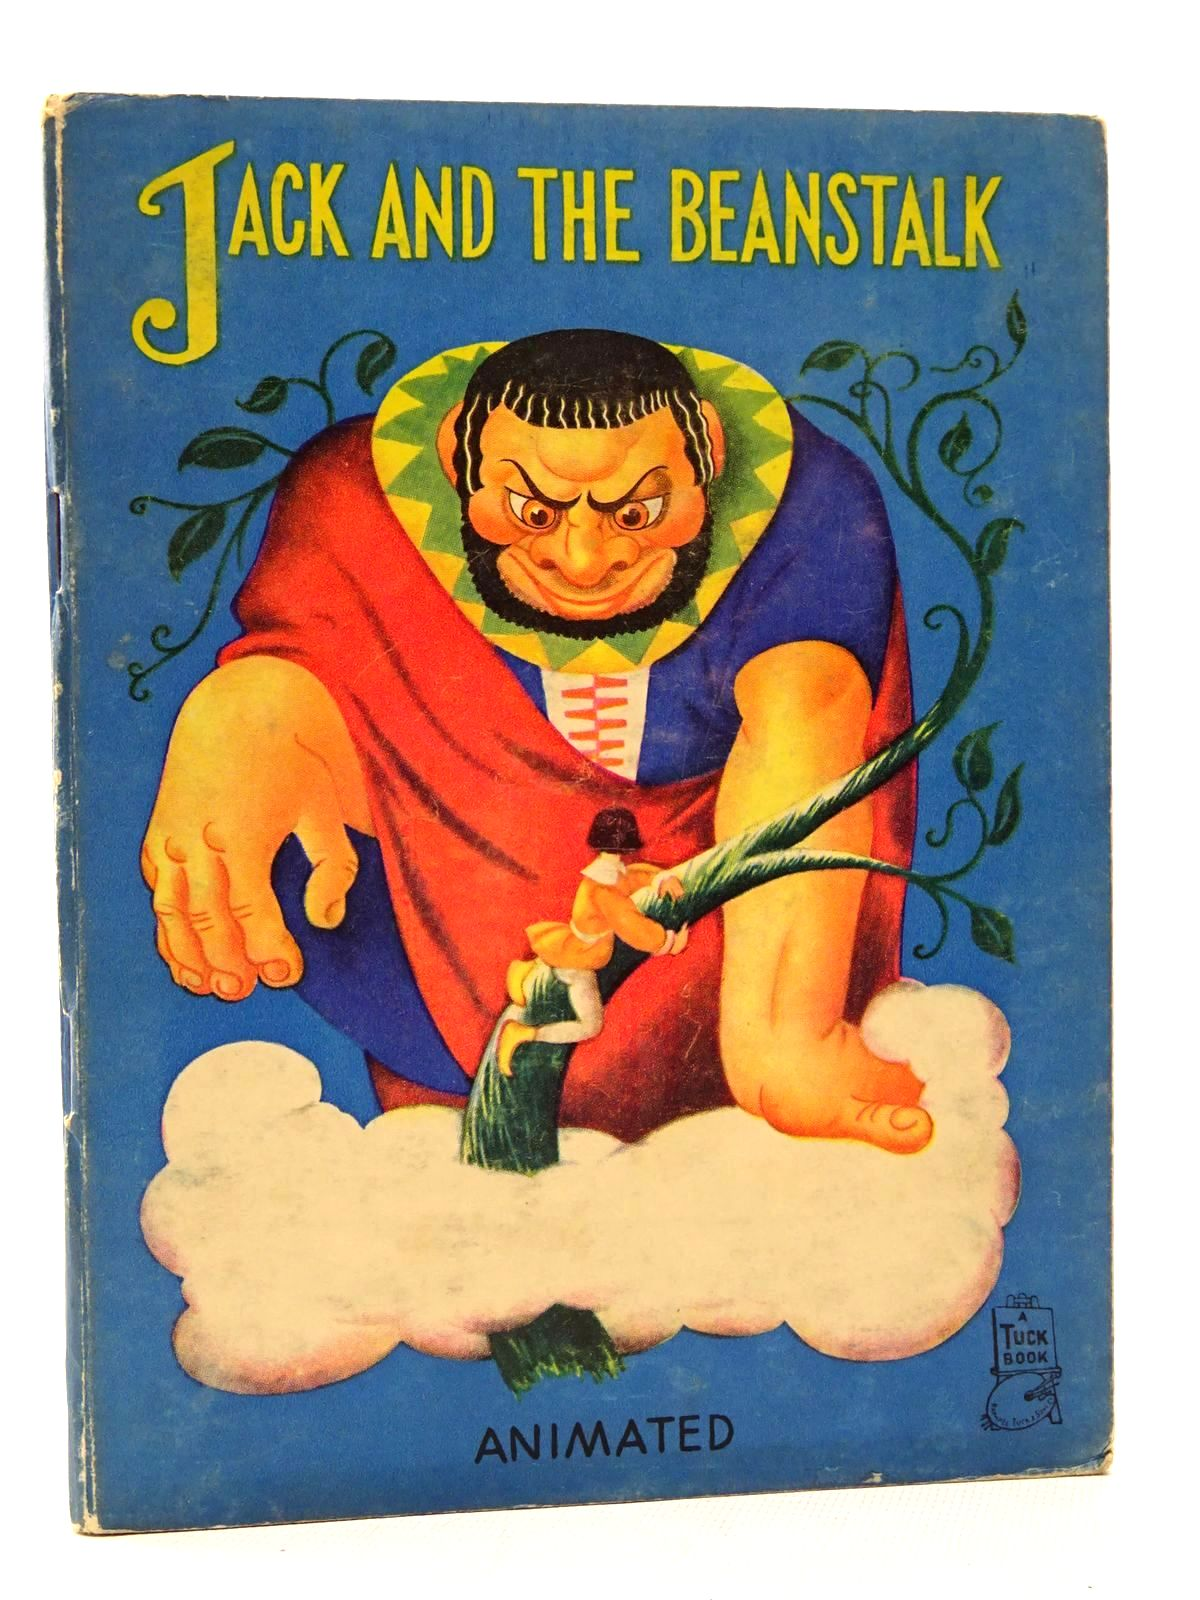 Photo of JACK AND THE BEANSTALK ANIMATED PICTURES published by Raphael Tuck & Sons Ltd. (STOCK CODE: 2124582)  for sale by Stella & Rose's Books